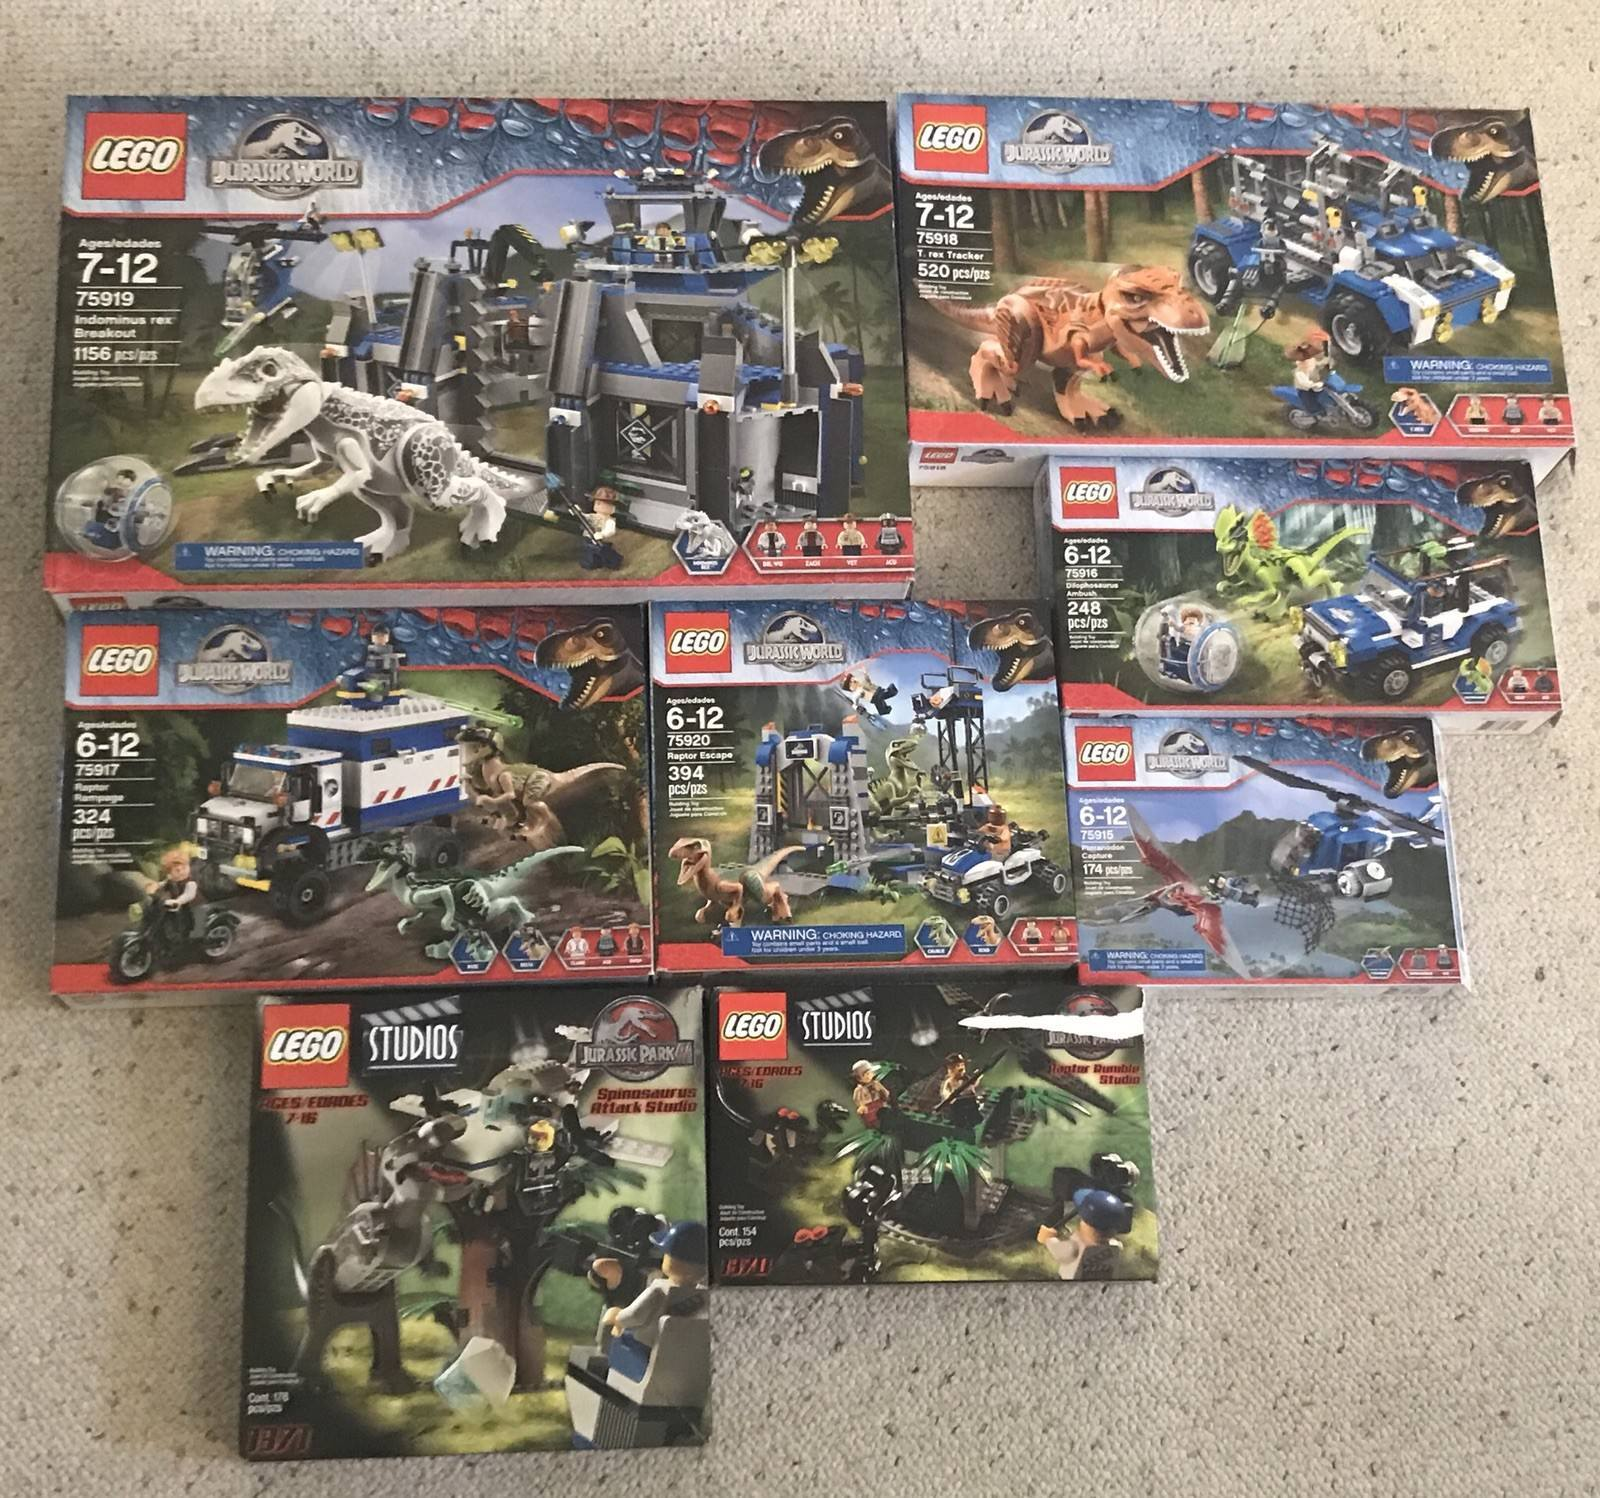 8 Jurassic Park 3 And Jurassic World Lego Sets Complete Retired 2001 2015 Rare